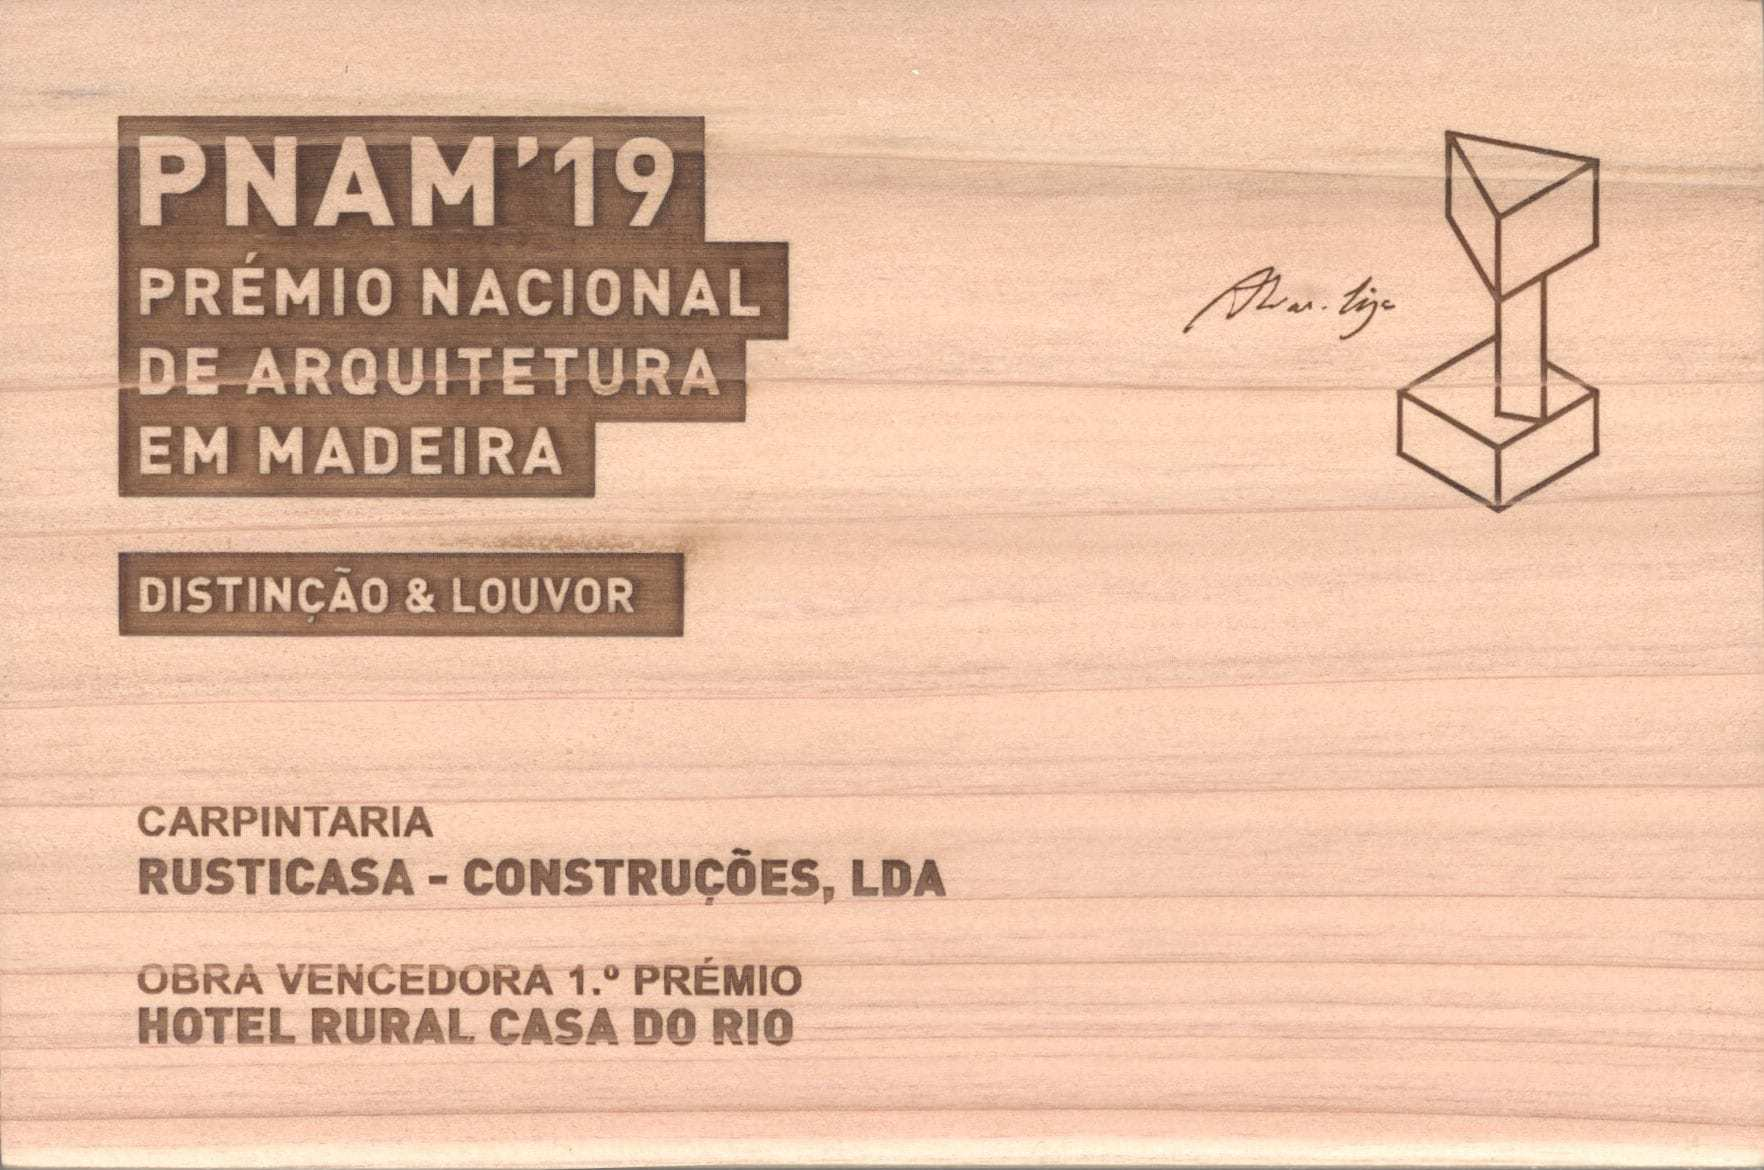 Prix National d'Architecture Bois – PNAM'19